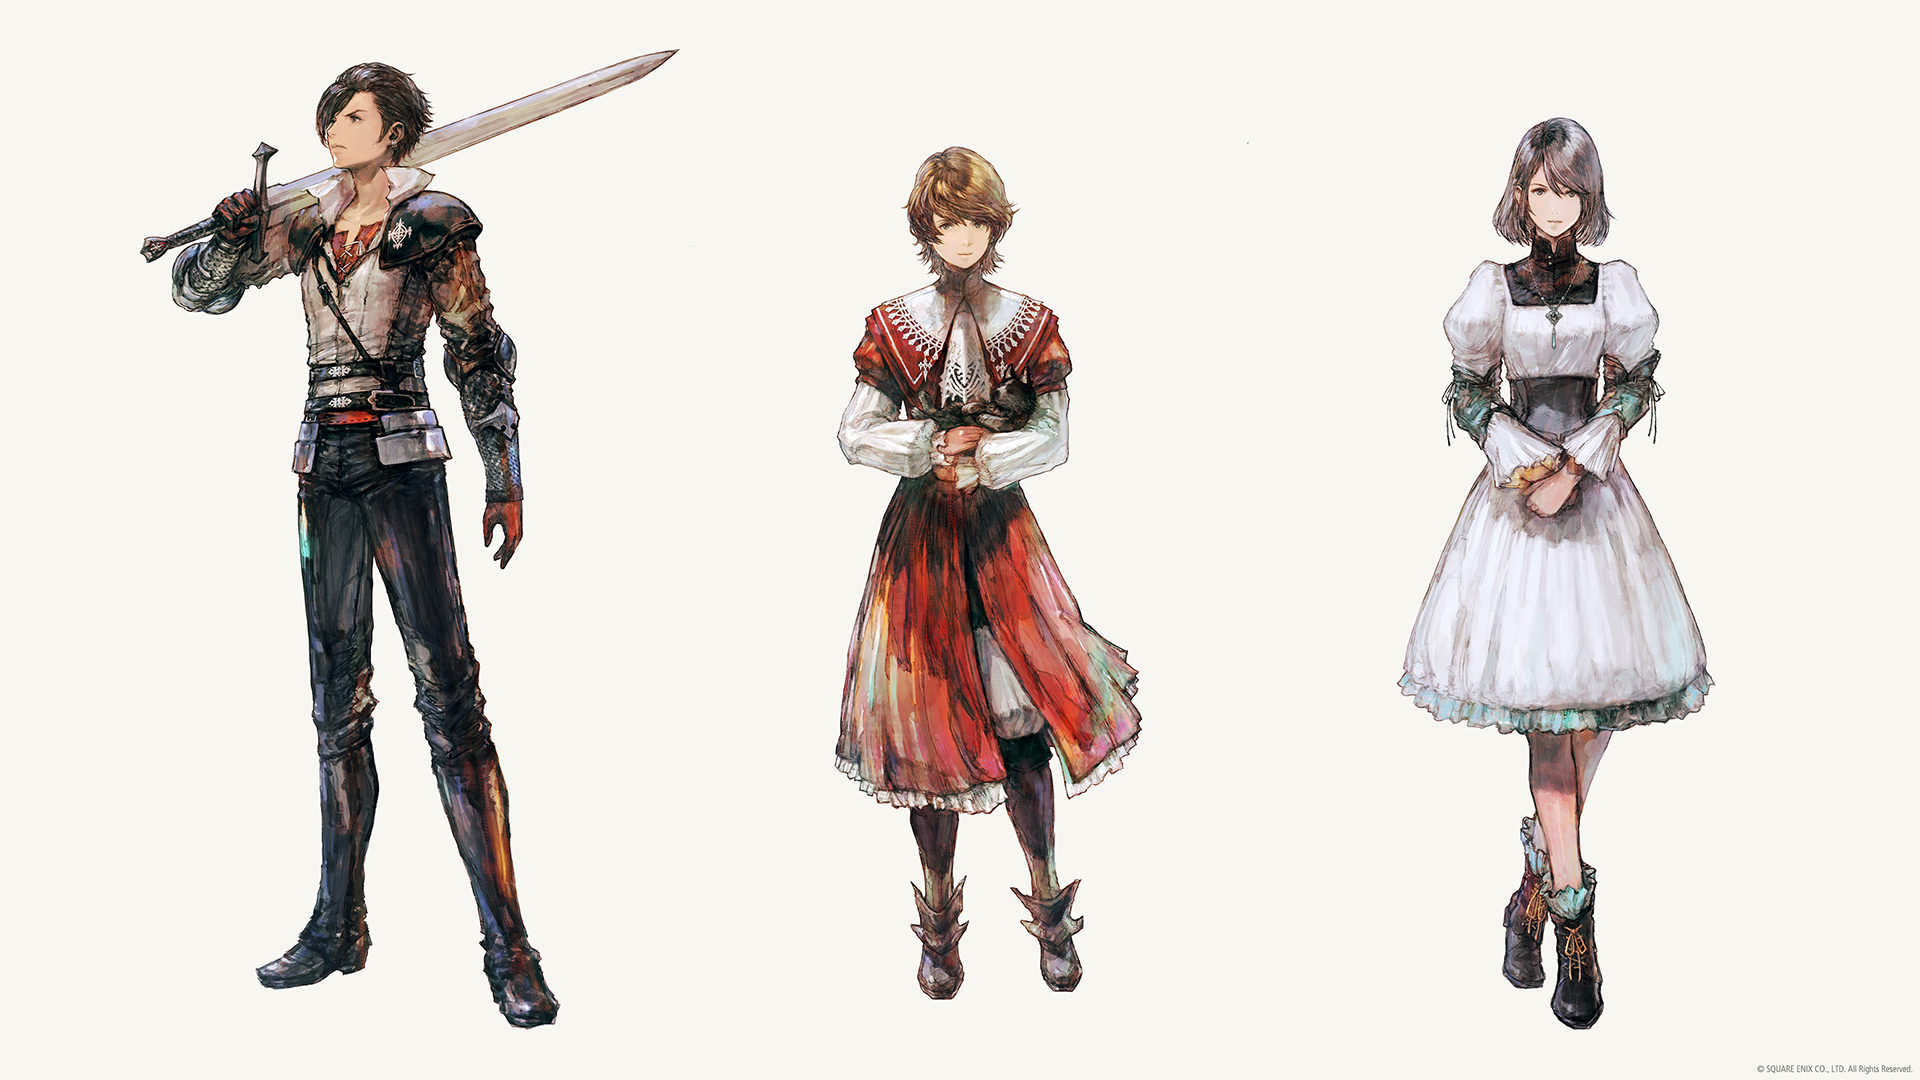 New Final Fantasy 16 characters and art